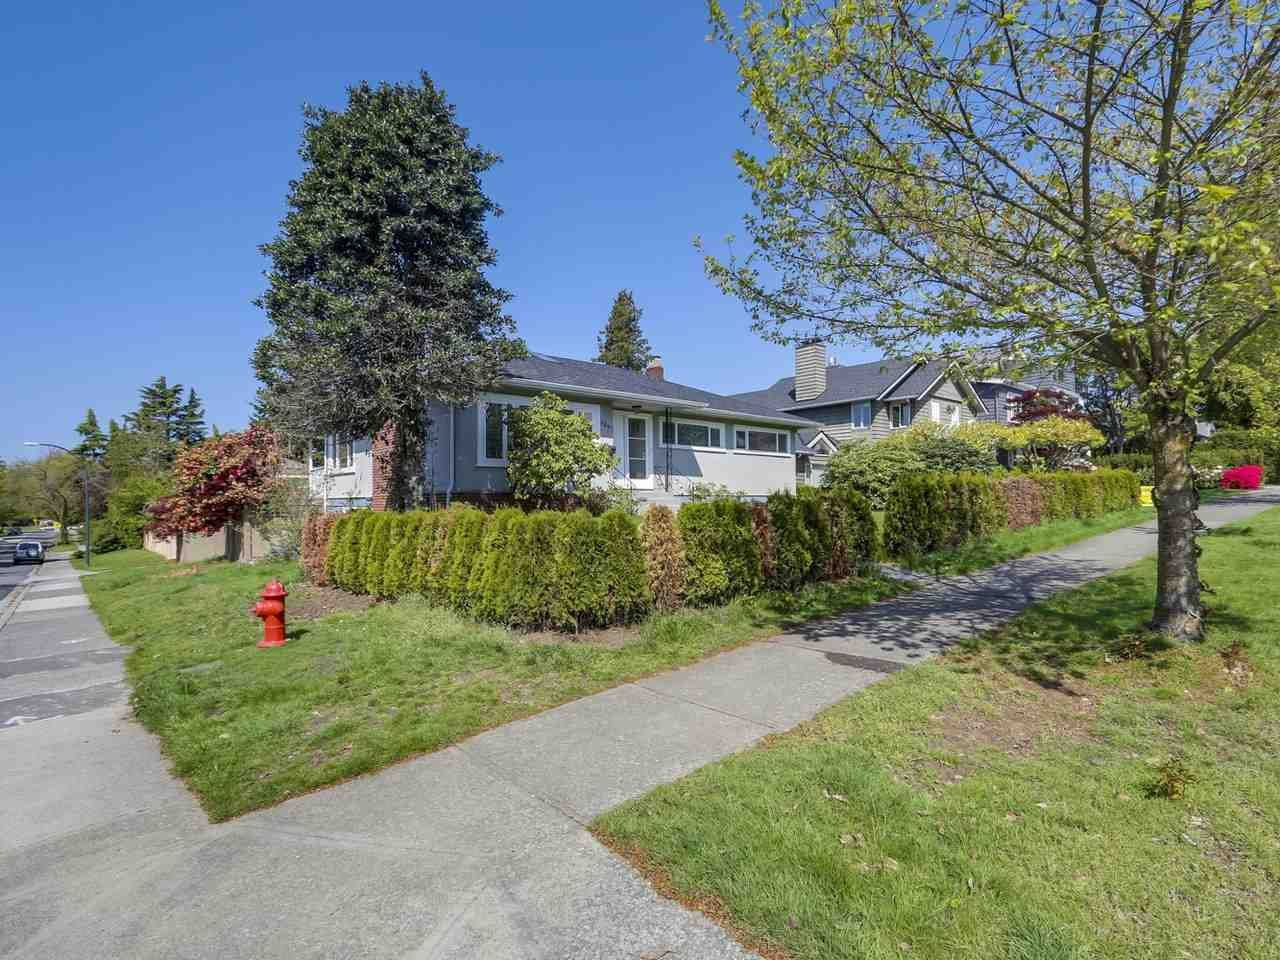 Main Photo: 7491 LABURNUM Street in Vancouver: S.W. Marine House for sale (Vancouver West)  : MLS®# R2394134